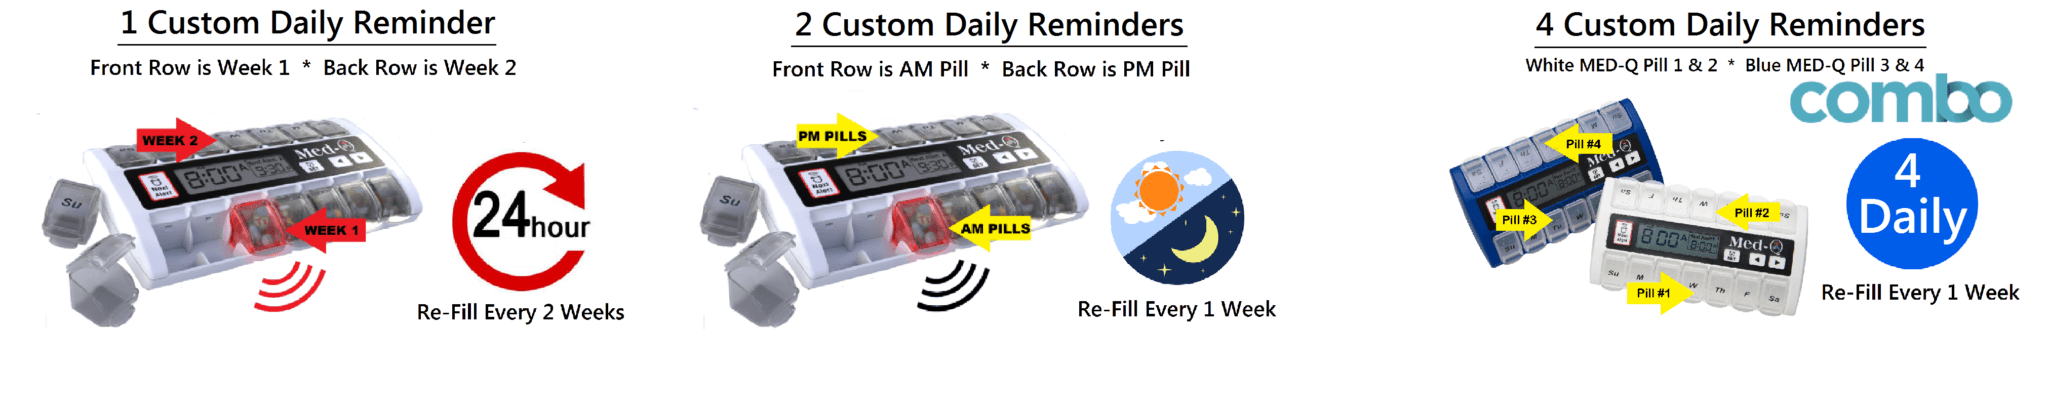 Automatic pill dispenser for Alzheimer's patients and other tips